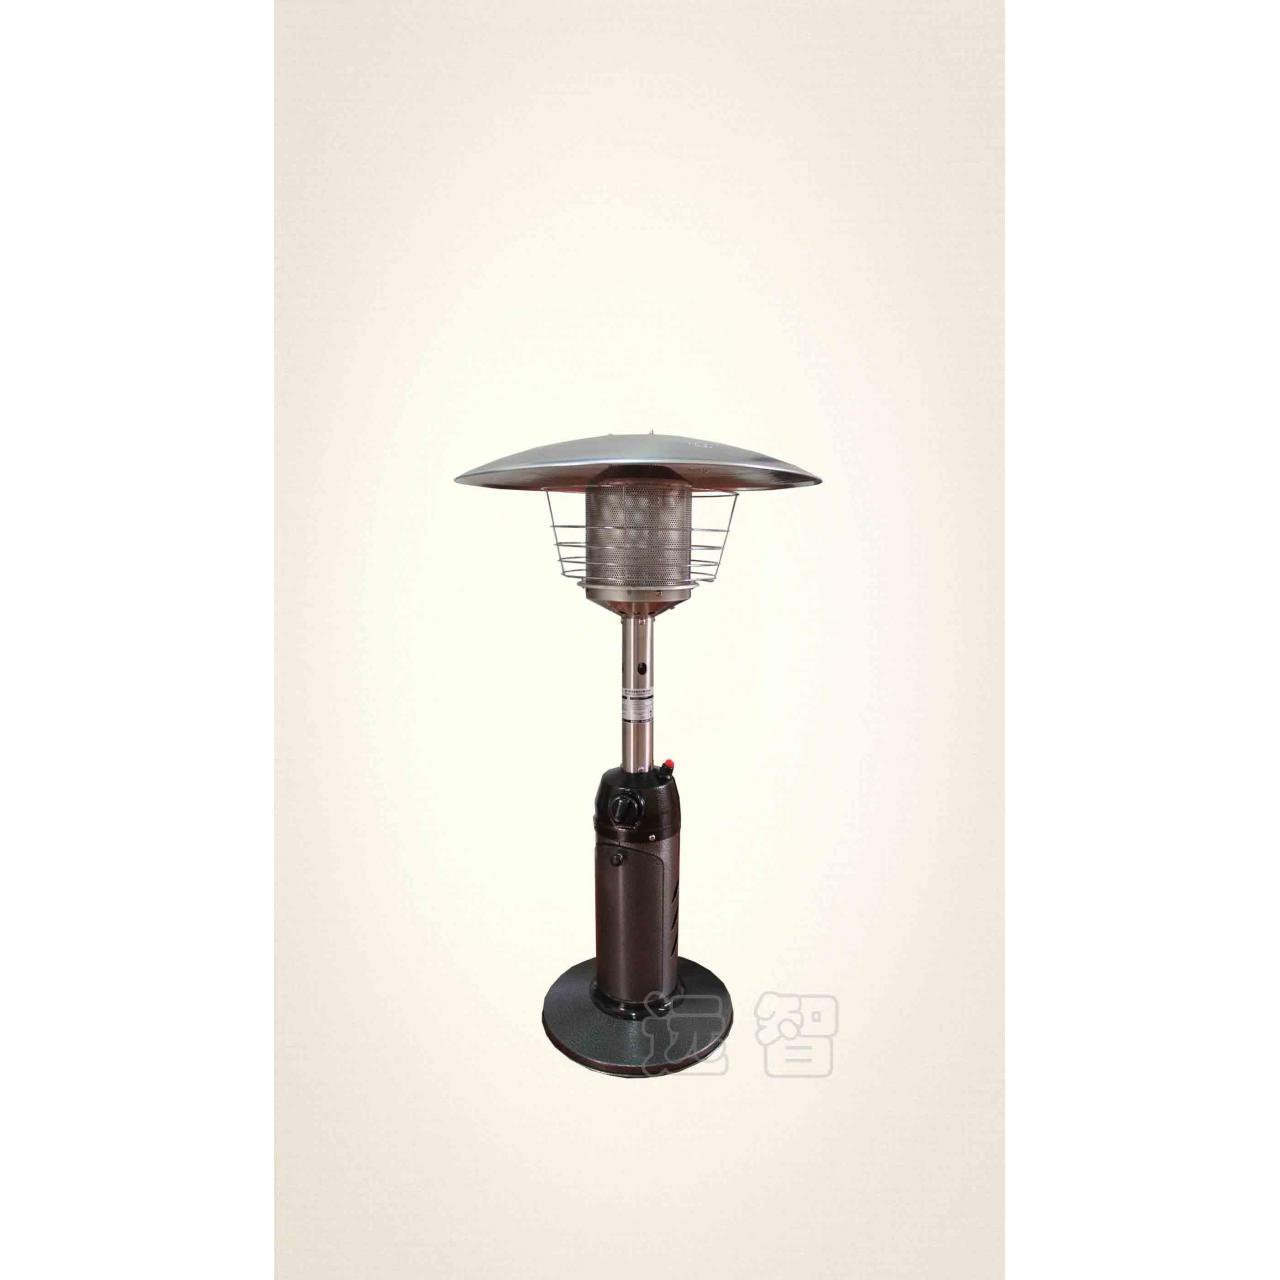 China Stainless Steel Portable Patio Heater/ Table Top Gas Heater (YZZS-001) on sale